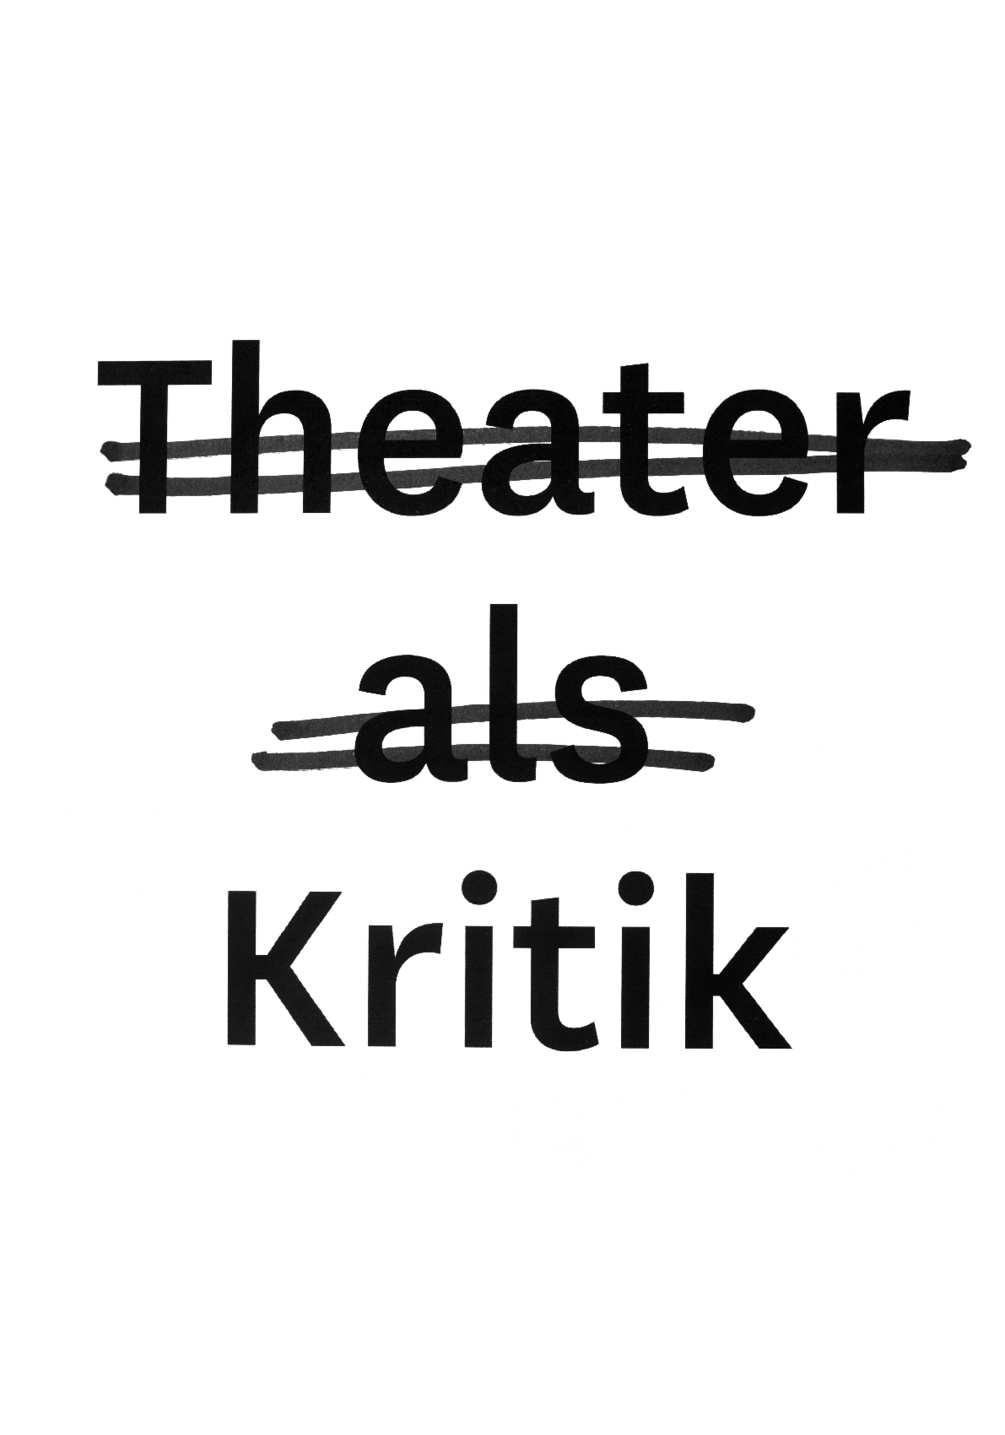 theater-as-critique-slip-13-1005x1435px